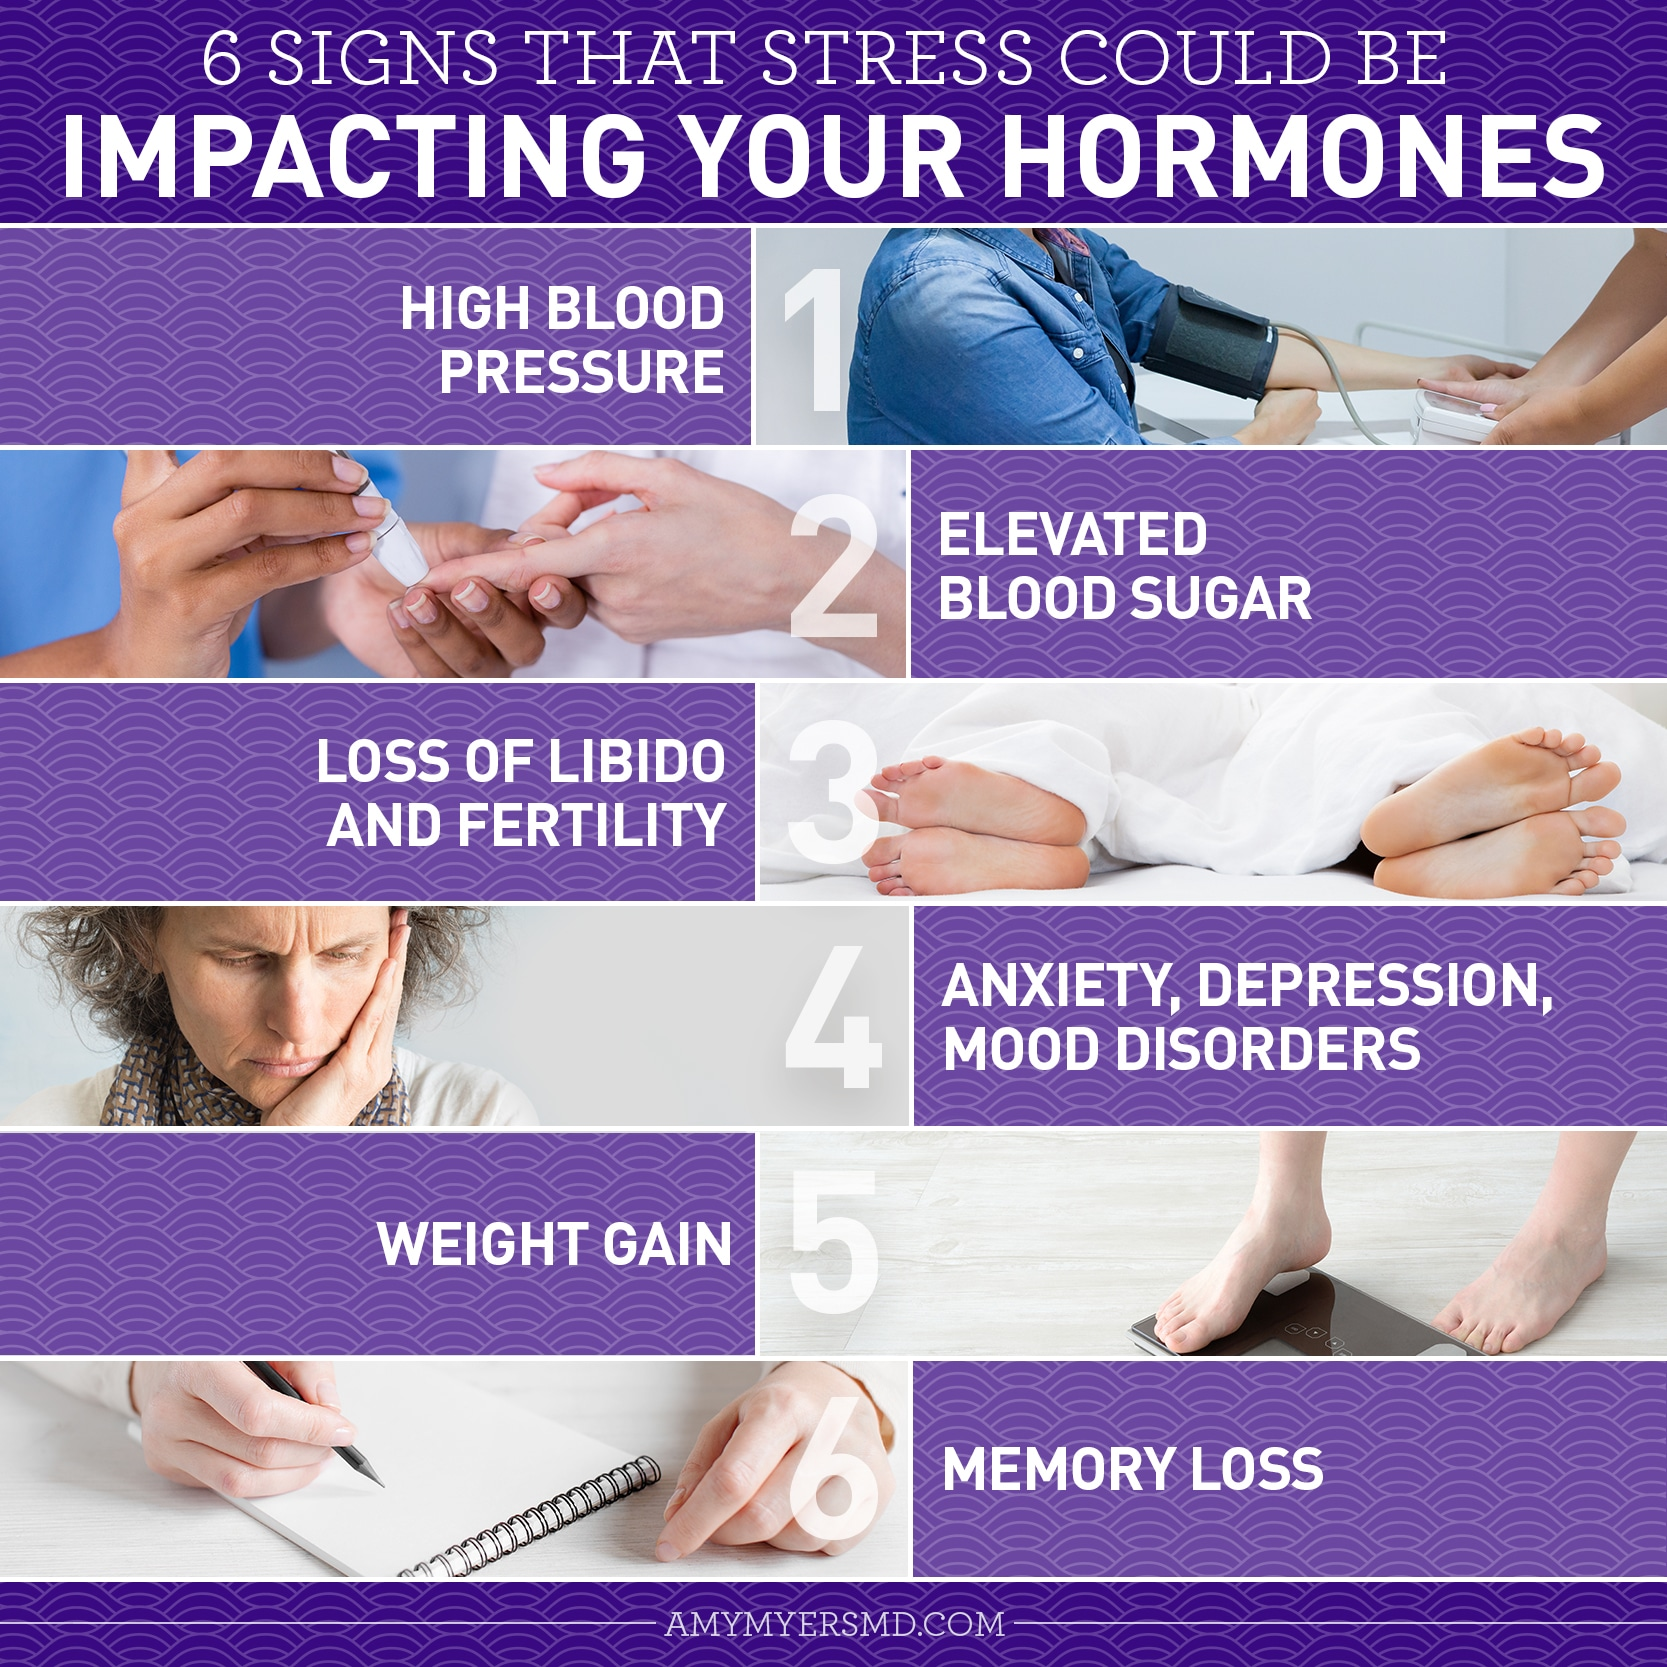 6 Signs That Stress Could be Impacting Your Hormones - Infographic - Amy Myers MD